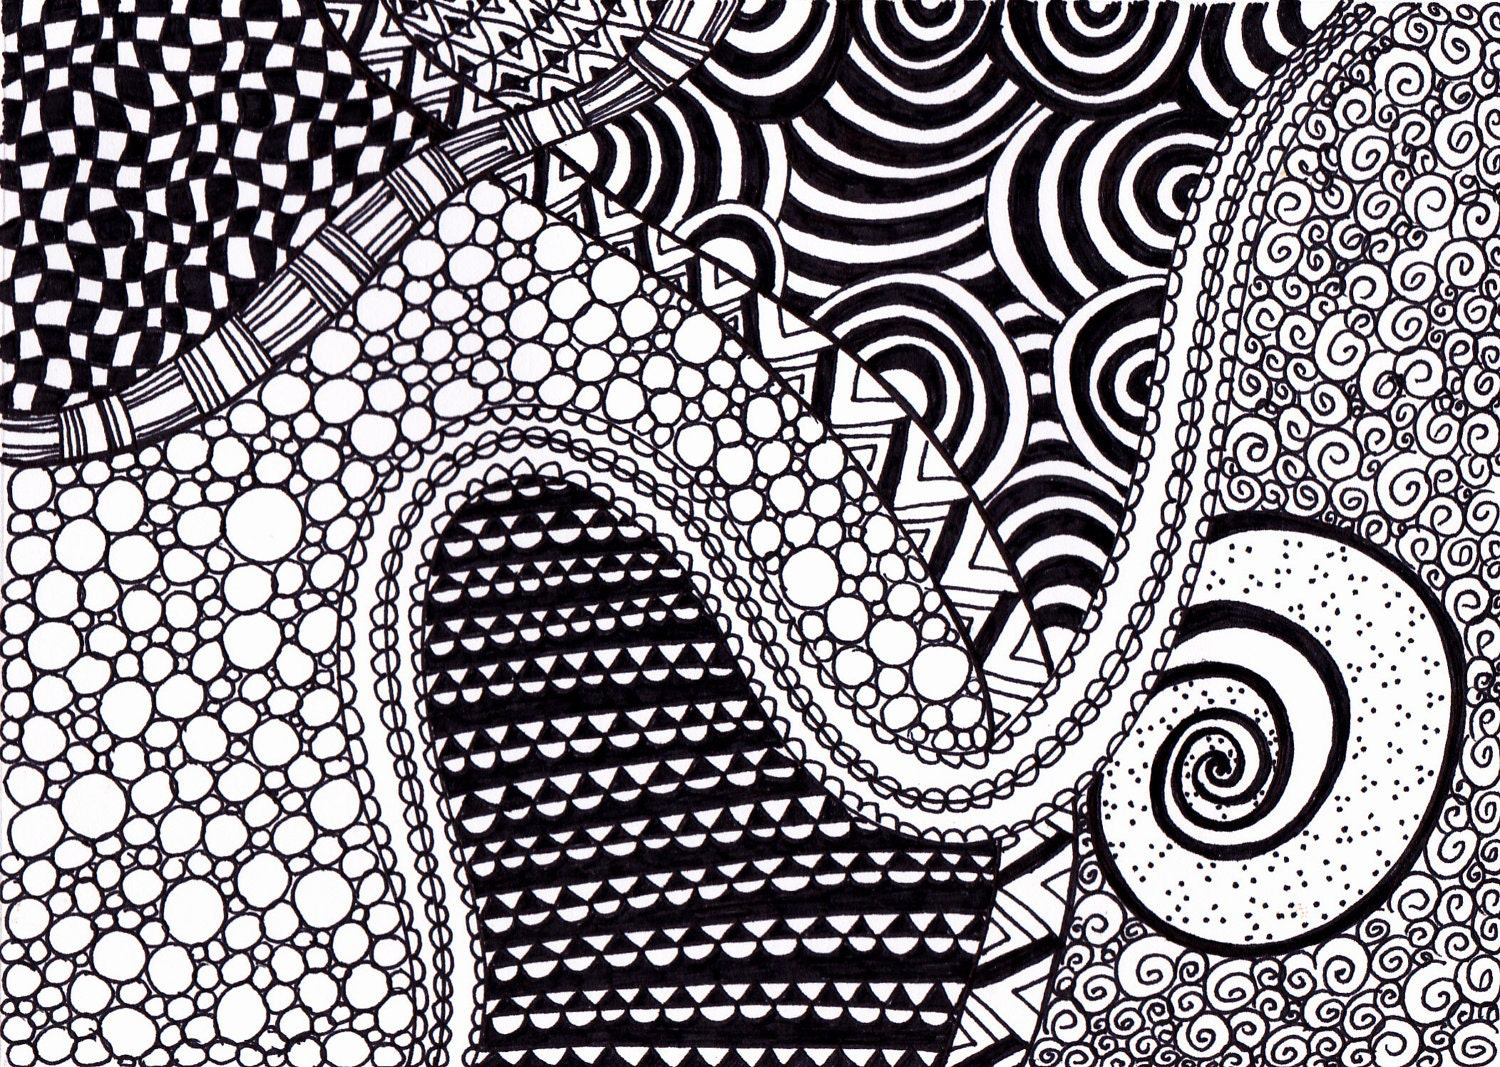 Zentangle Inspired Art Ink Drawing Black and White